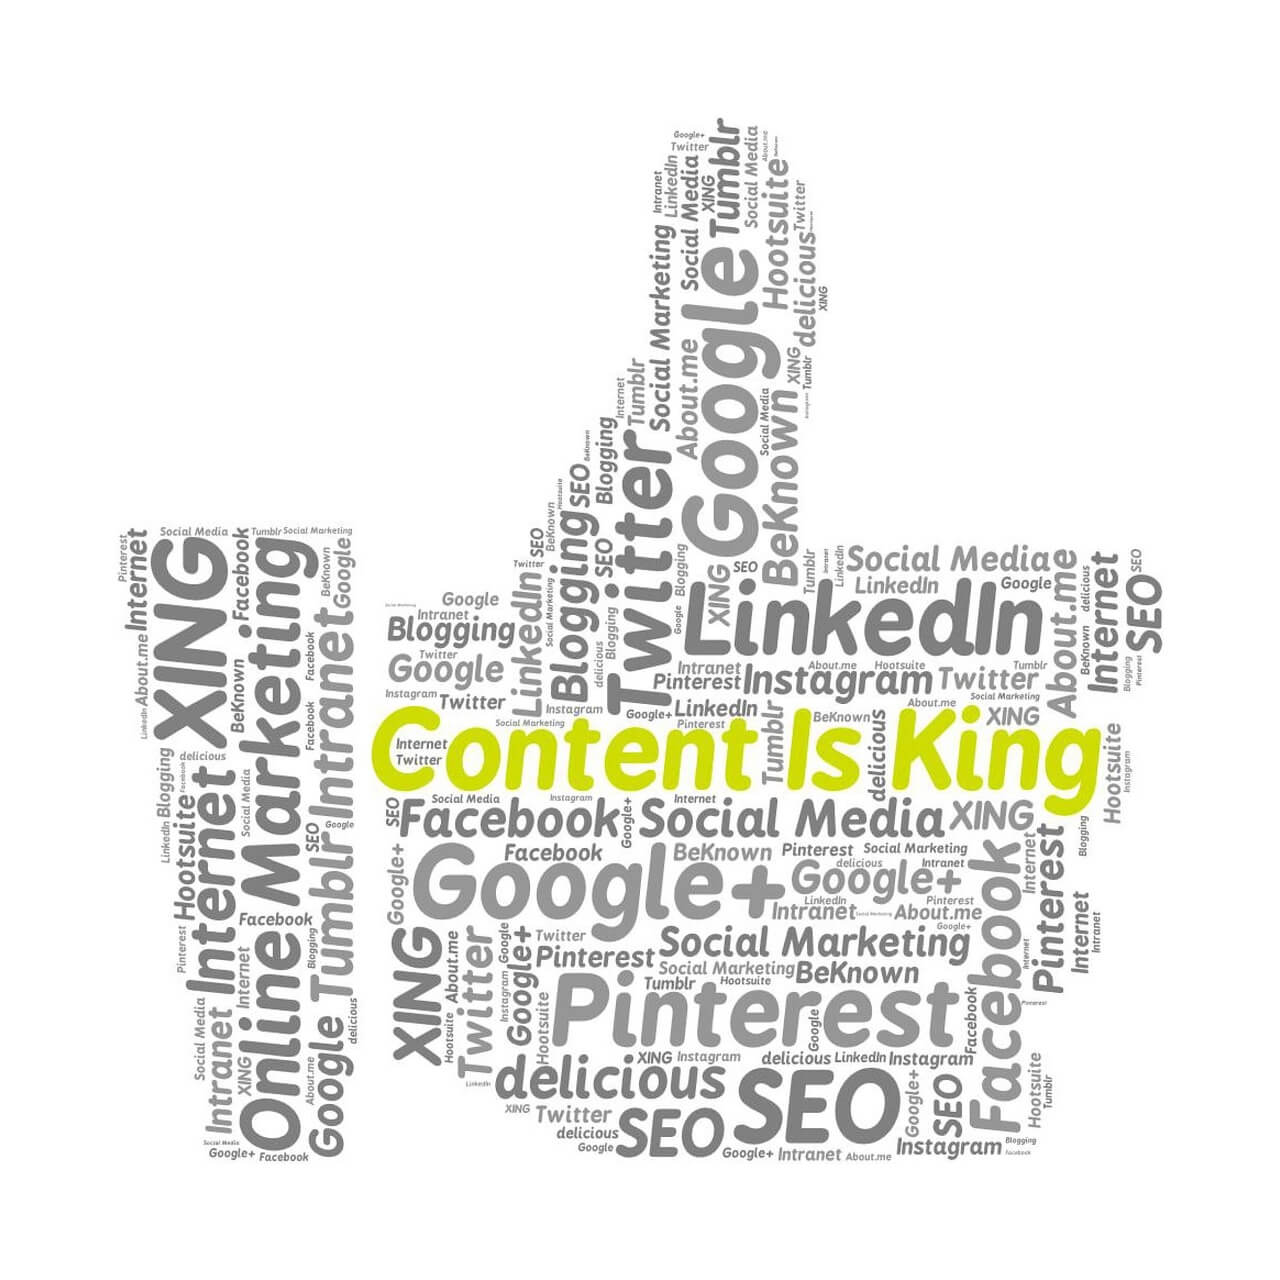 A *thumbs-up* word cloud featuring important digital terms with special emphasis on *Content is King*.